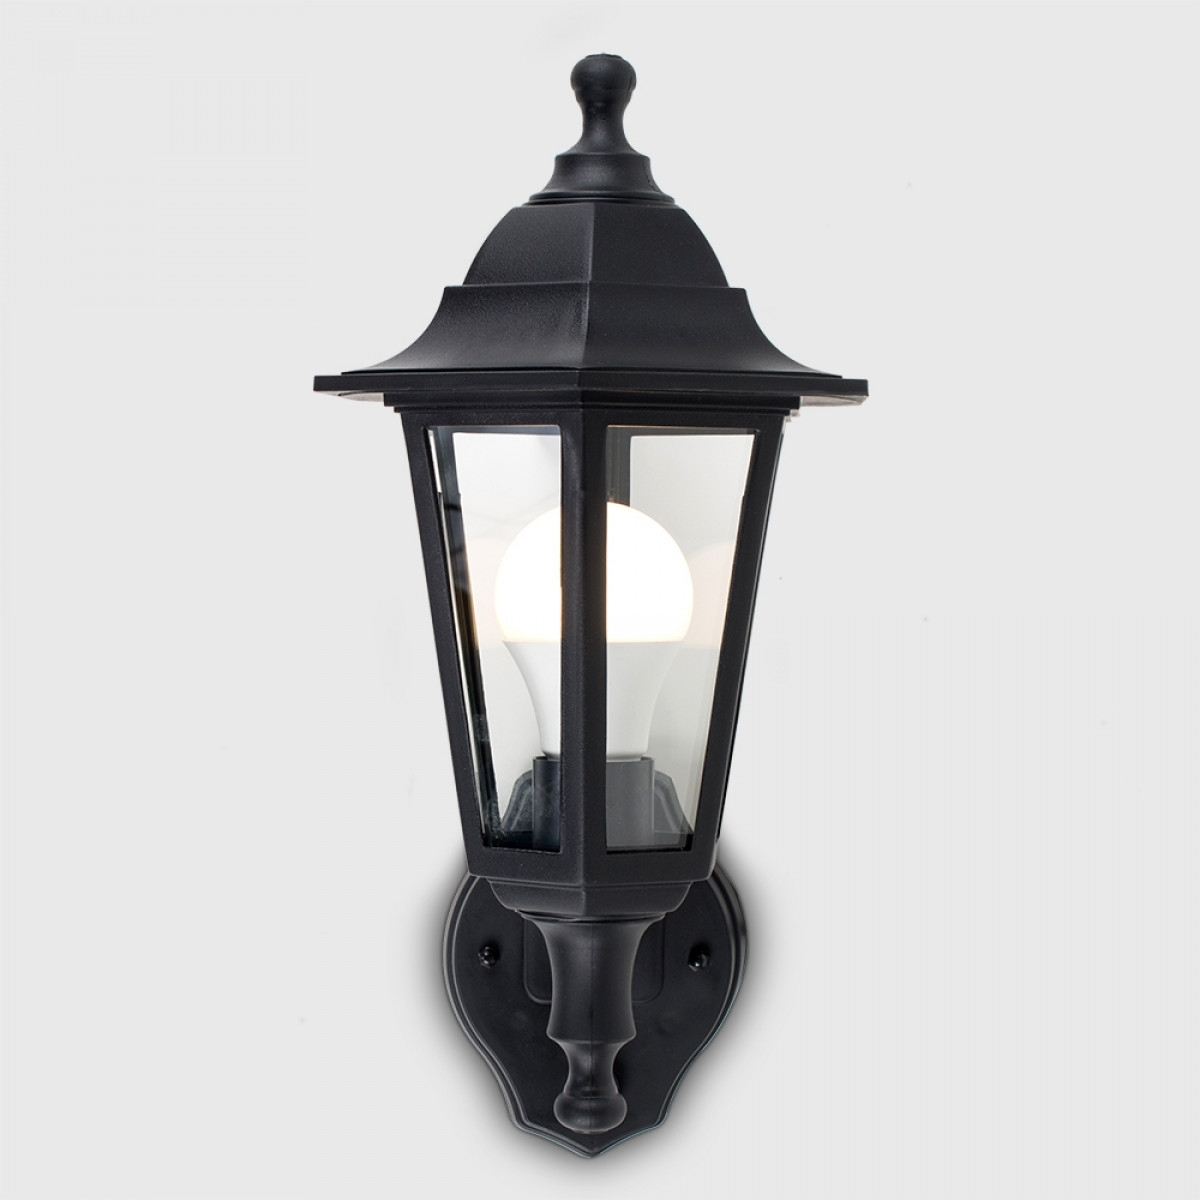 Black Mayfair Pir Ip44 Outdoor Lantern | Value Lights for Outdoor Lanterns With Pir (Image 4 of 20)